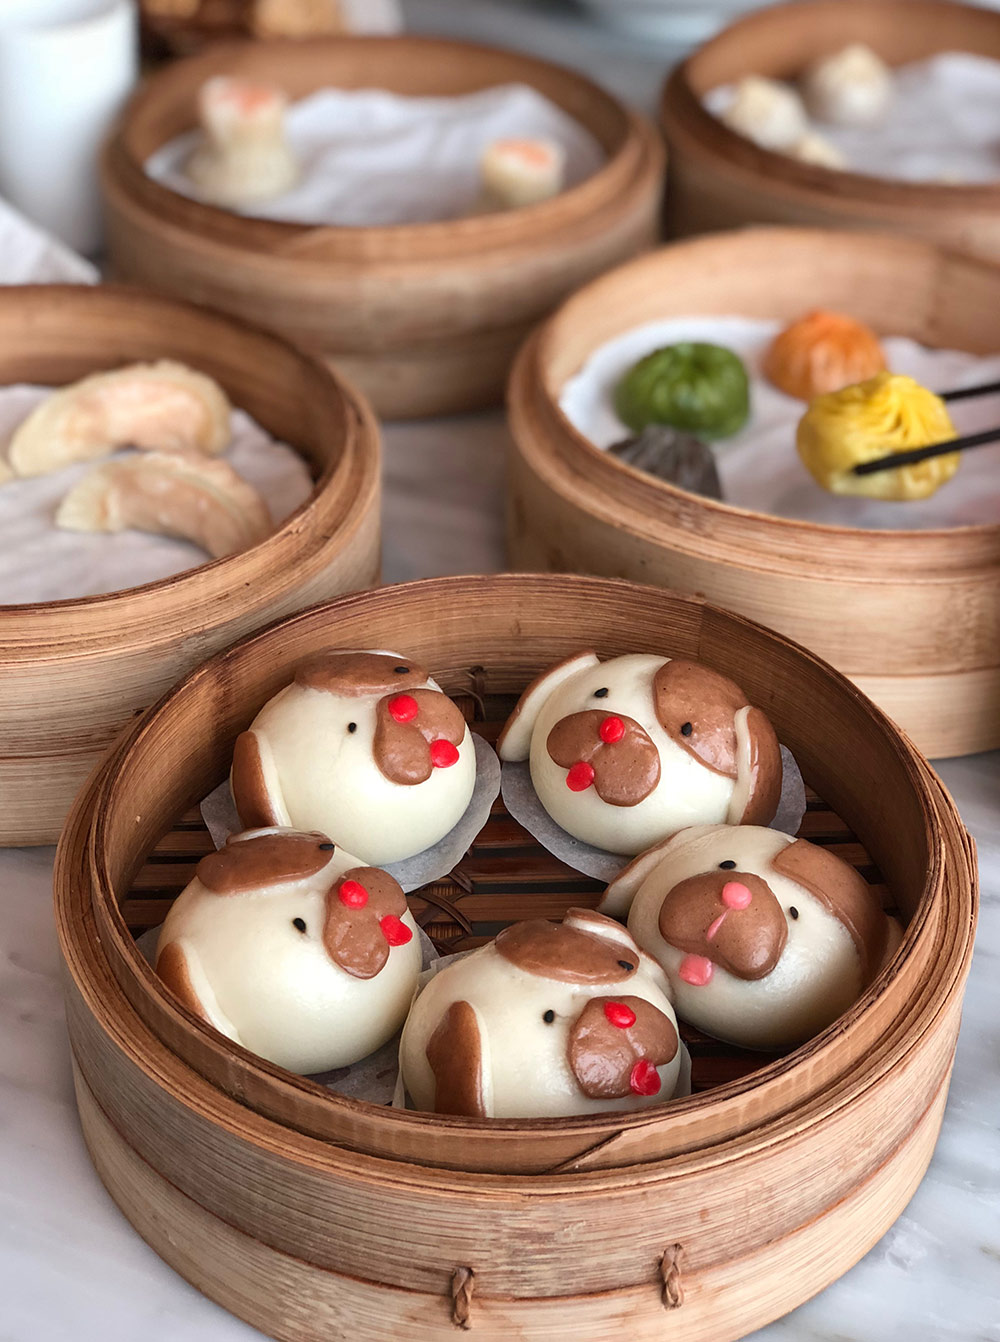 Cute buns with puppy faces. Only available at Din Tai Fung.